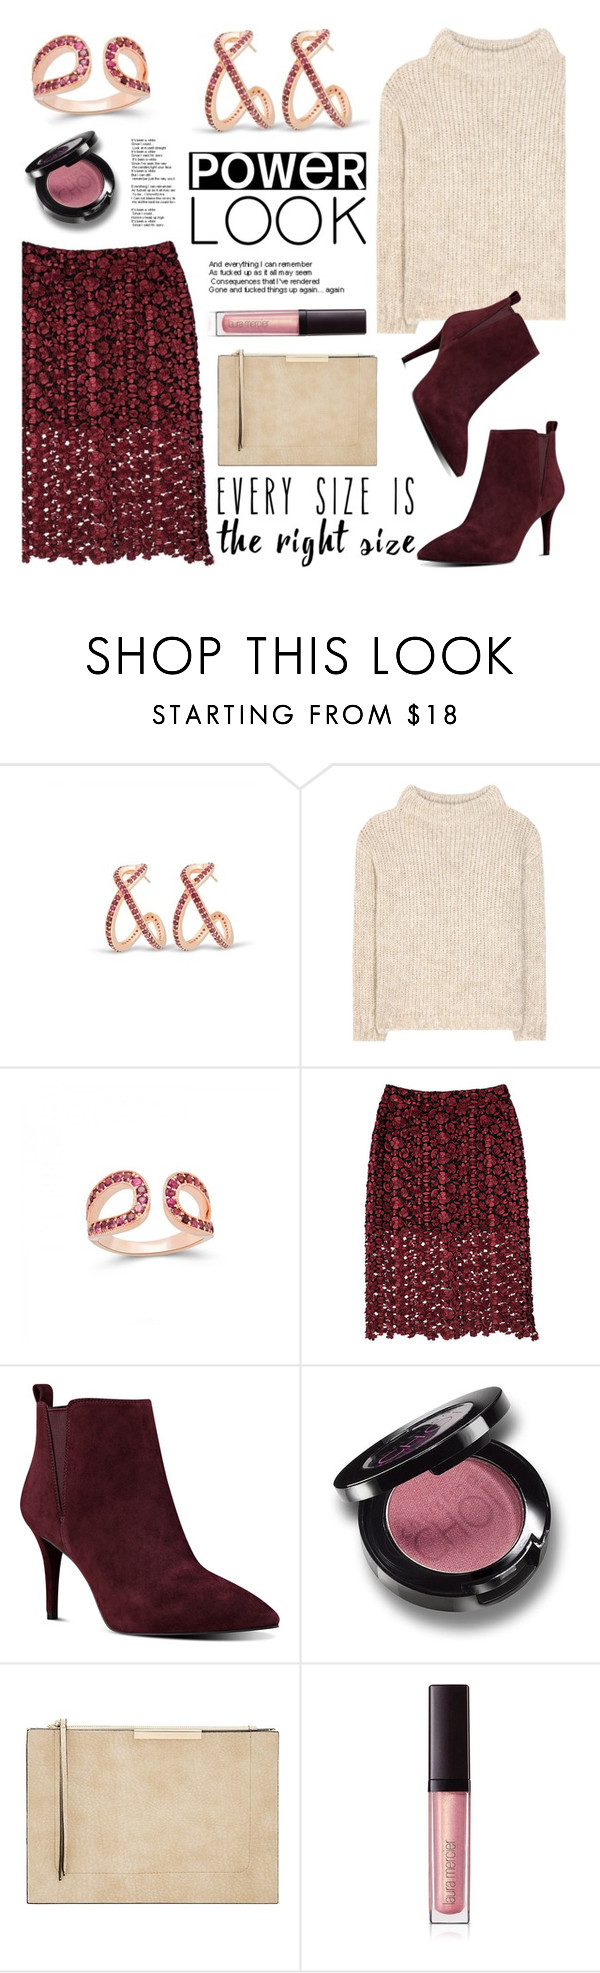 """Your Signature Power Look"" by blossom-jewels ❤ liked on Polyvore featuring Tom Ford, Nine West, Laura Mercier, contestentry, powerlook and Blossomjewels"